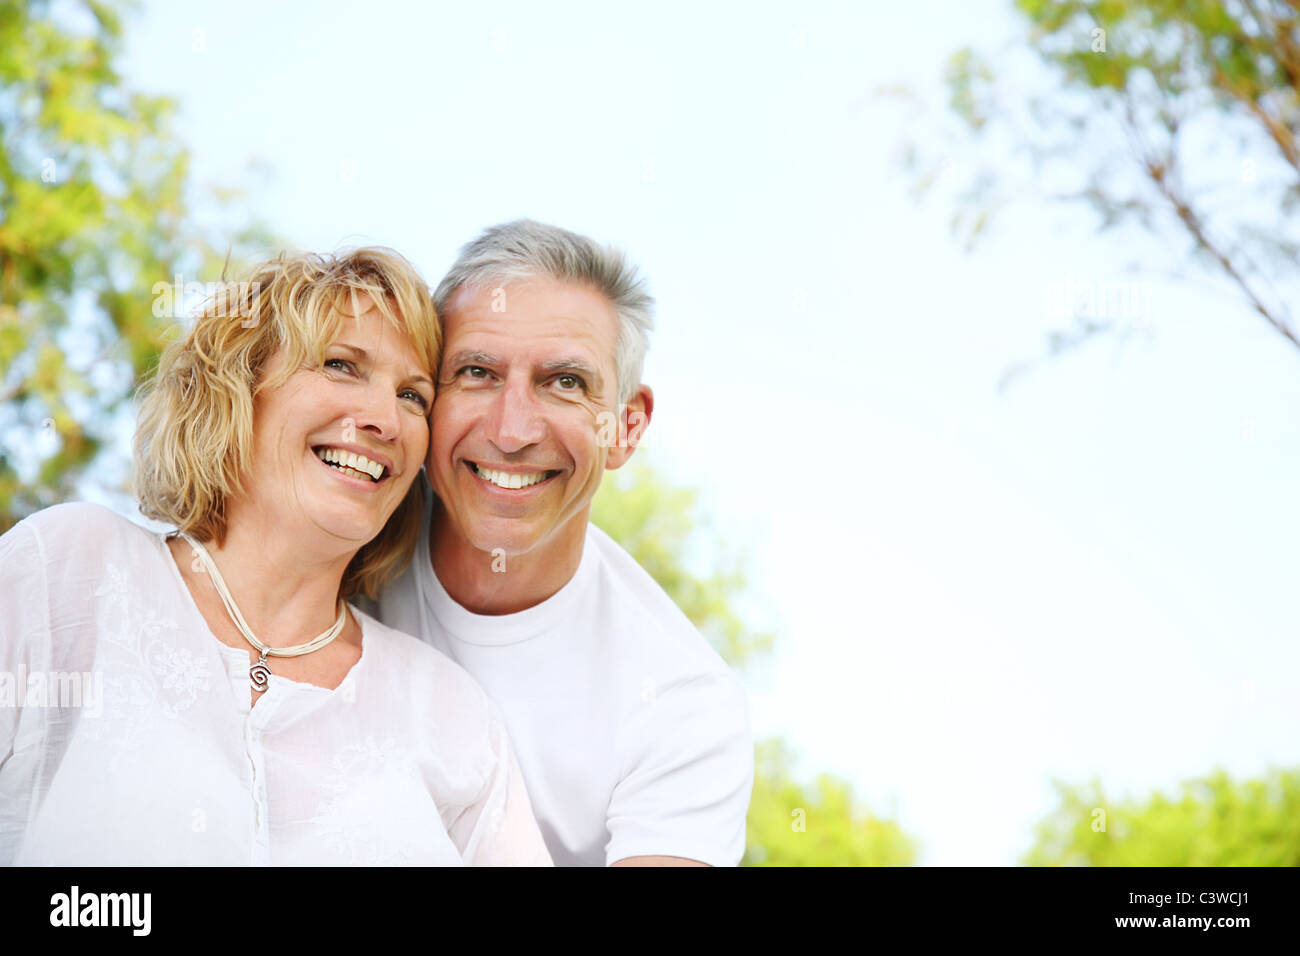 Close-up portrait of a mature couple smiling and embracing. Stock Photo